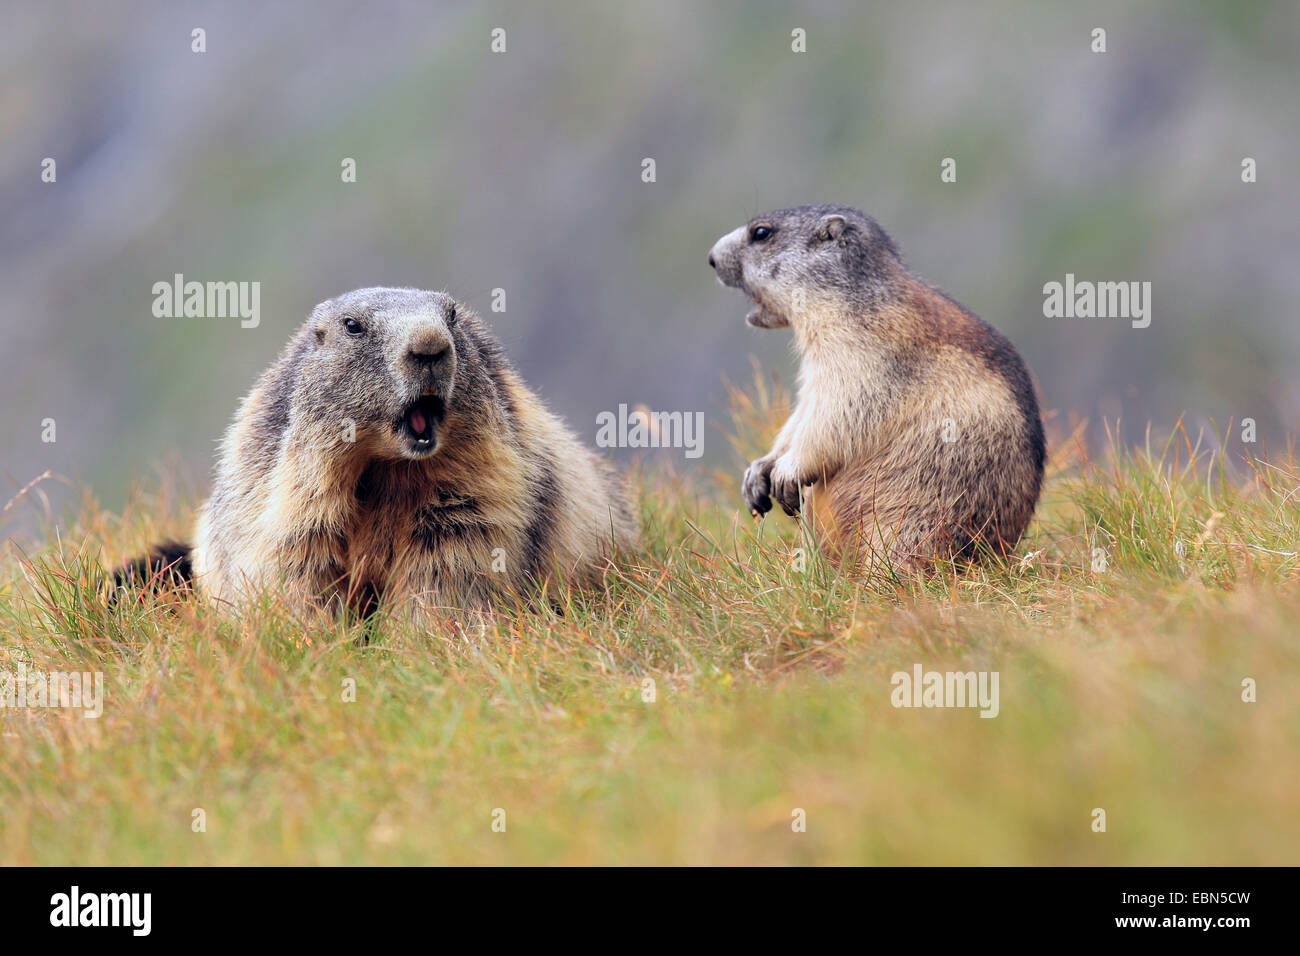 alpine marmot (Marmota marmota), old and young sitting together on grass , Austria, Hohe Tauern National Park - Stock Image